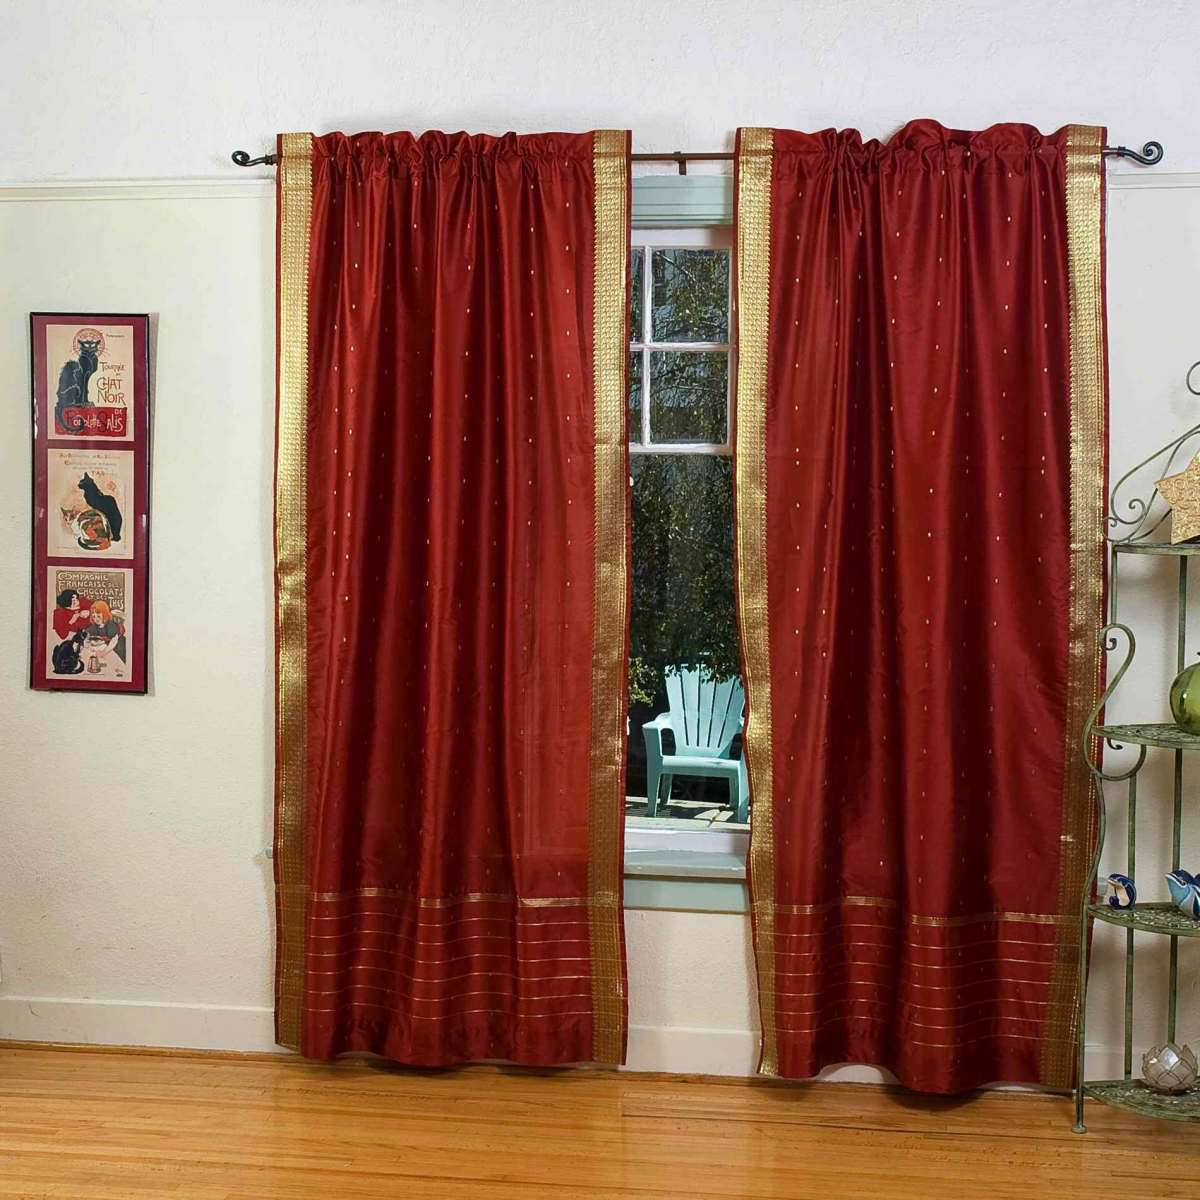 Lined-Rust Rod Pocket  Sheer Sari Curtain  Drape  Panel   - 80W x 63L - Piece